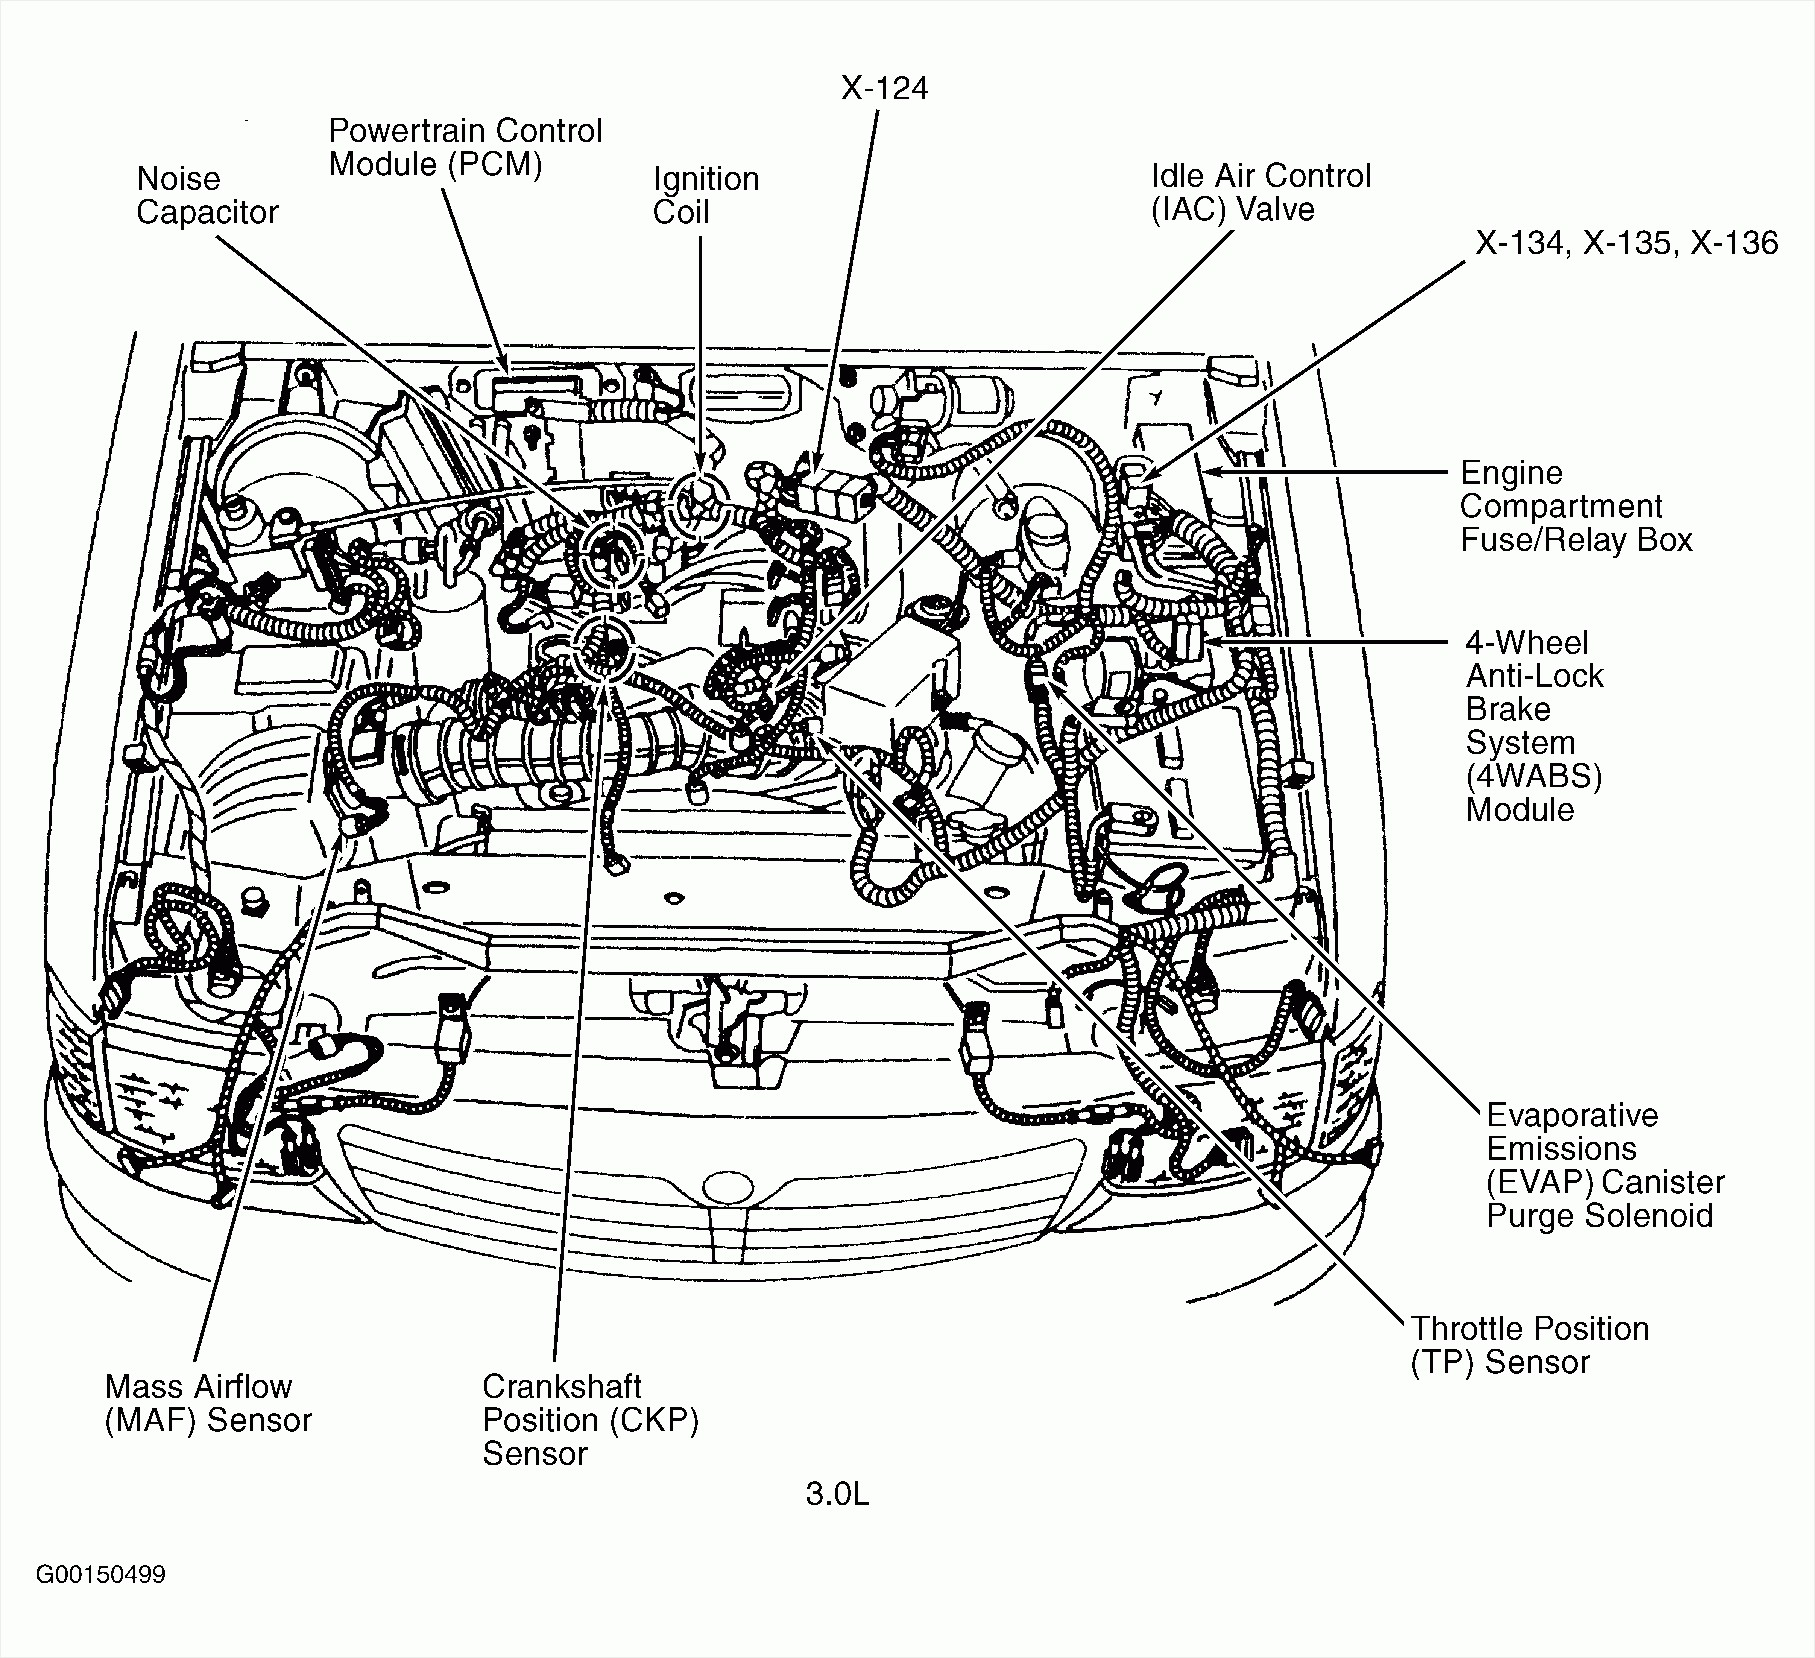 hight resolution of 05 f250 6 0 engine diagram best site wiring harness 2003 ford 6 0 engine diagram 2003